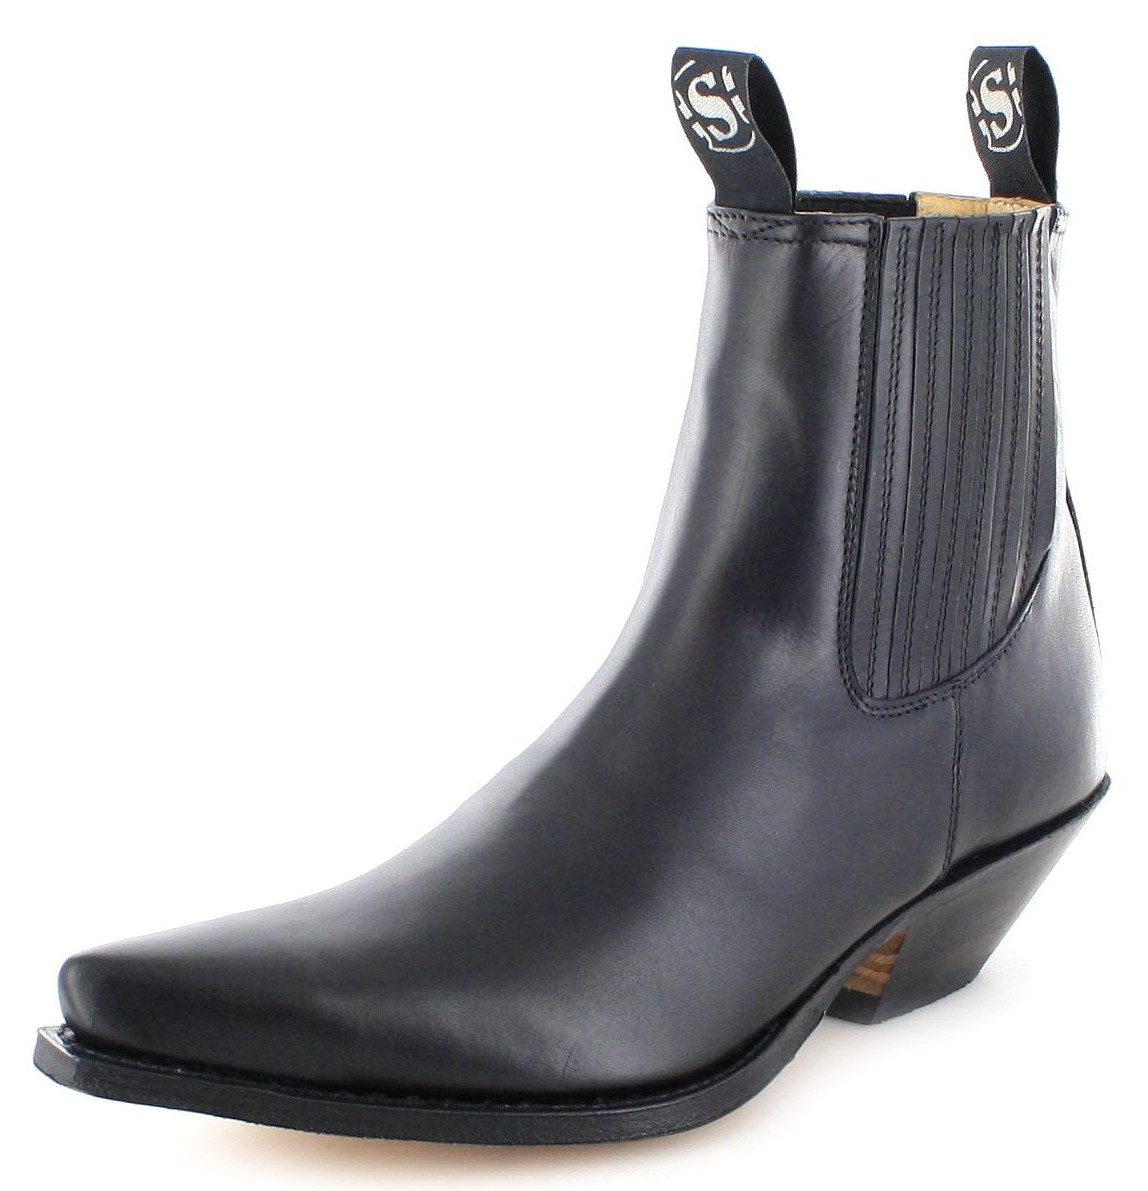 Sendra Boots 1692 Negro Western ankle boot - black